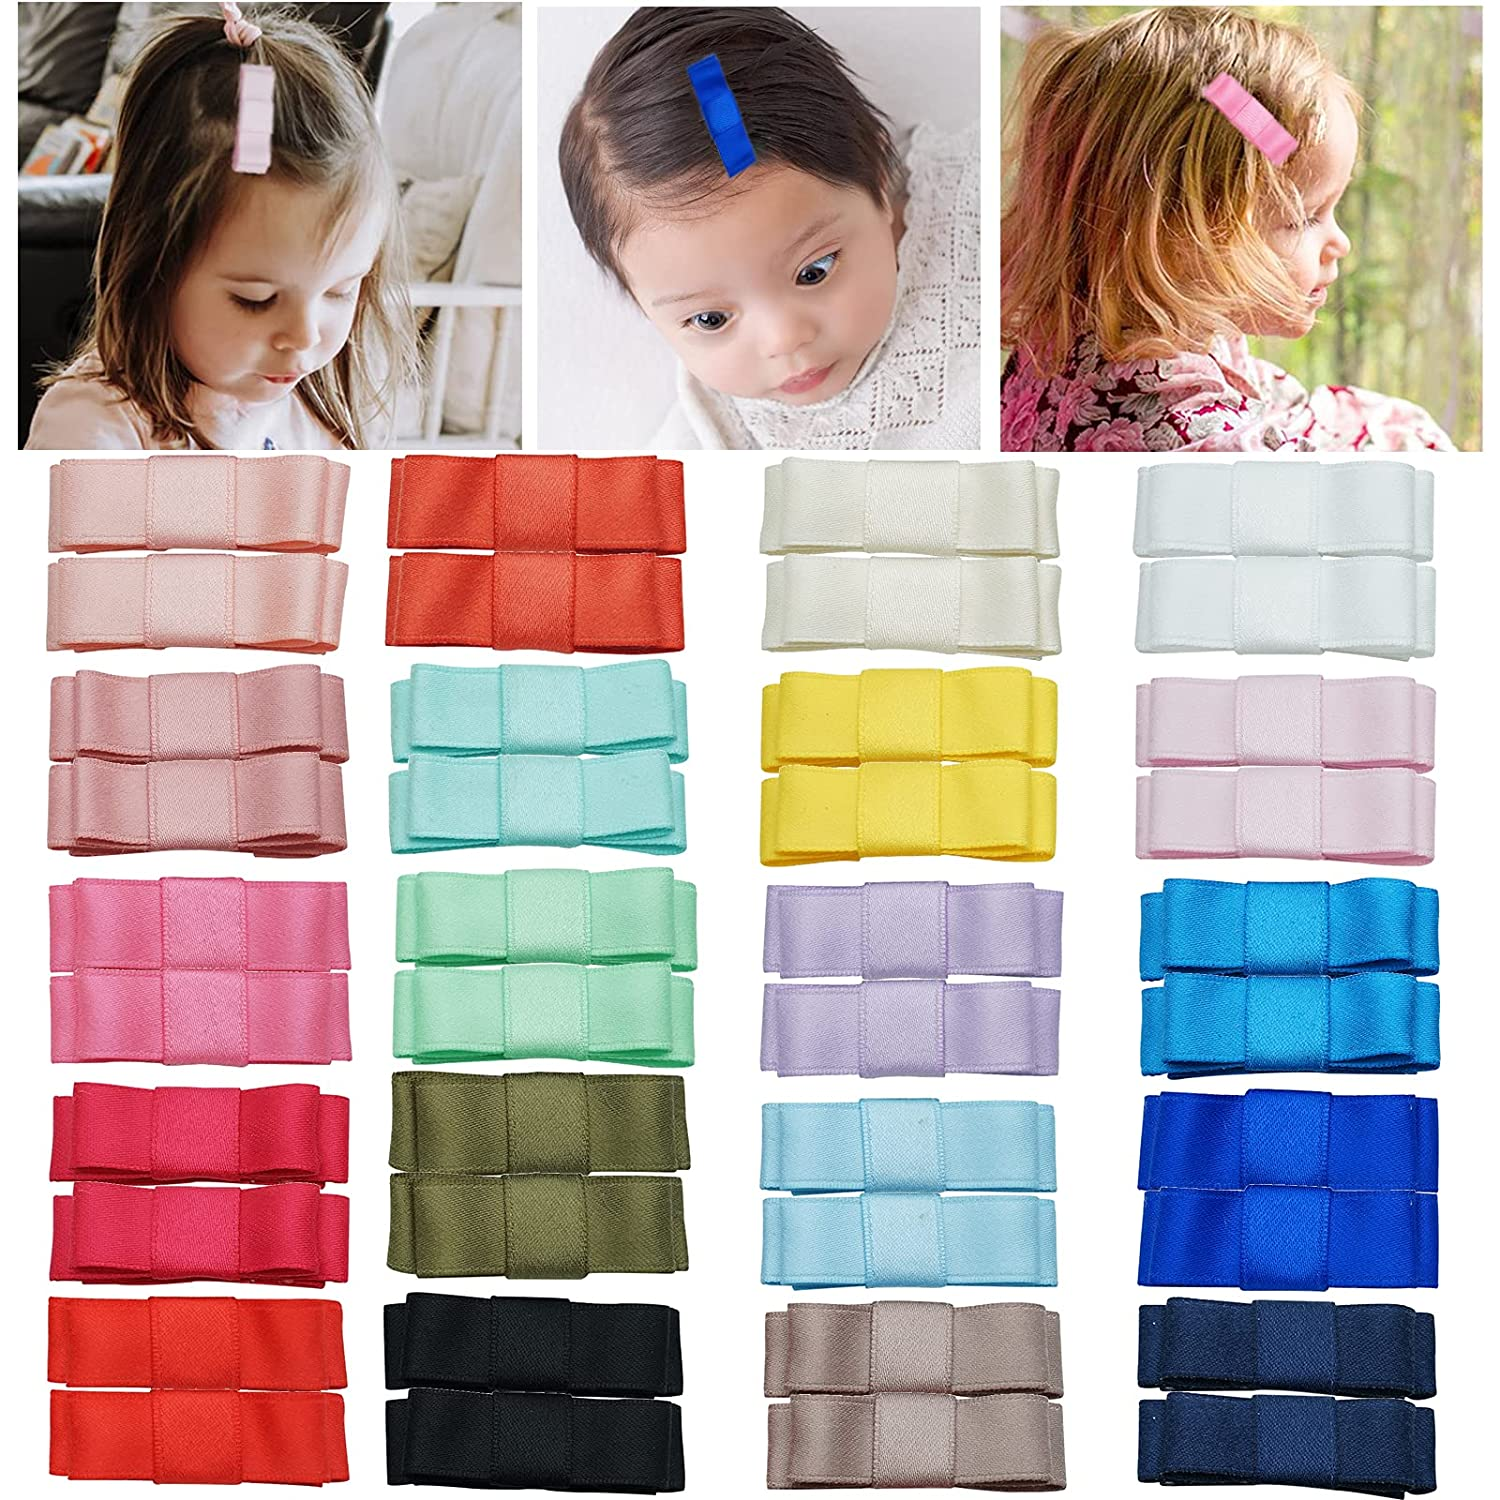 40 Pieces 20 Colors in Pairs Mini Bow Tie Hair Bows Snap Hair Clips for Baby Girls Toddlers and Kids